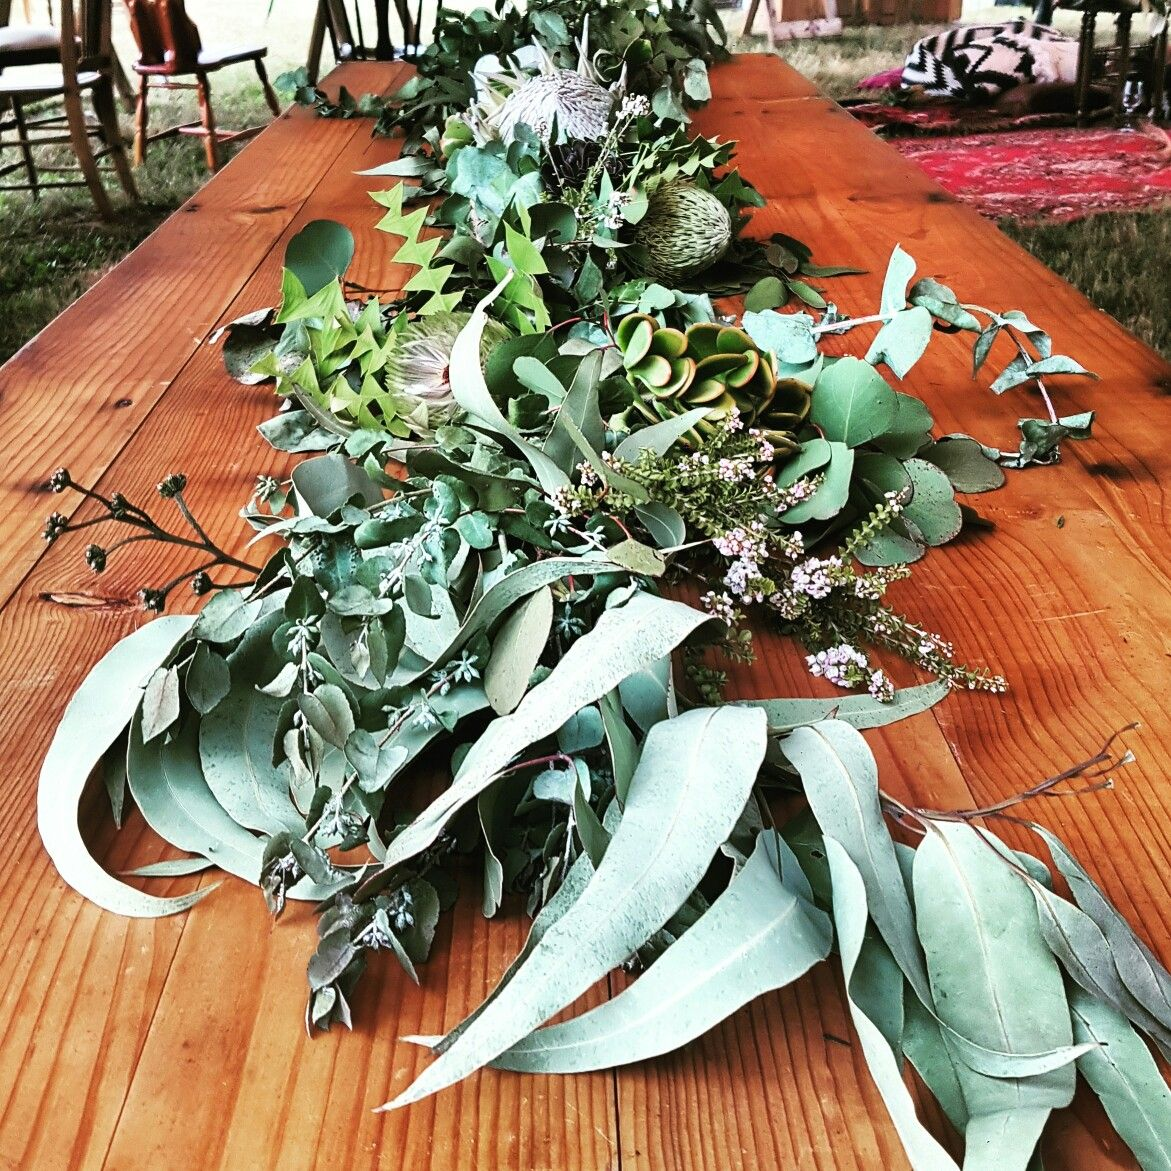 The beautiful Native table runner at Matilda and Shane's wedding in Bright, Vic. *swoon* and what a wonderful couple!!! ❤😍 #marriedAF #wedding #weddinginspiration #weddingflowers #flowerarrangement #native #australia #nature #melbournebride #rustic #stretchtent #romantic #eventhire #eventstyling #stretched_events #floral #foliage #bohemian #boho #bride #bridalinspo  #love #newlyweds . . . Email us at Hello@stretchedevents.com